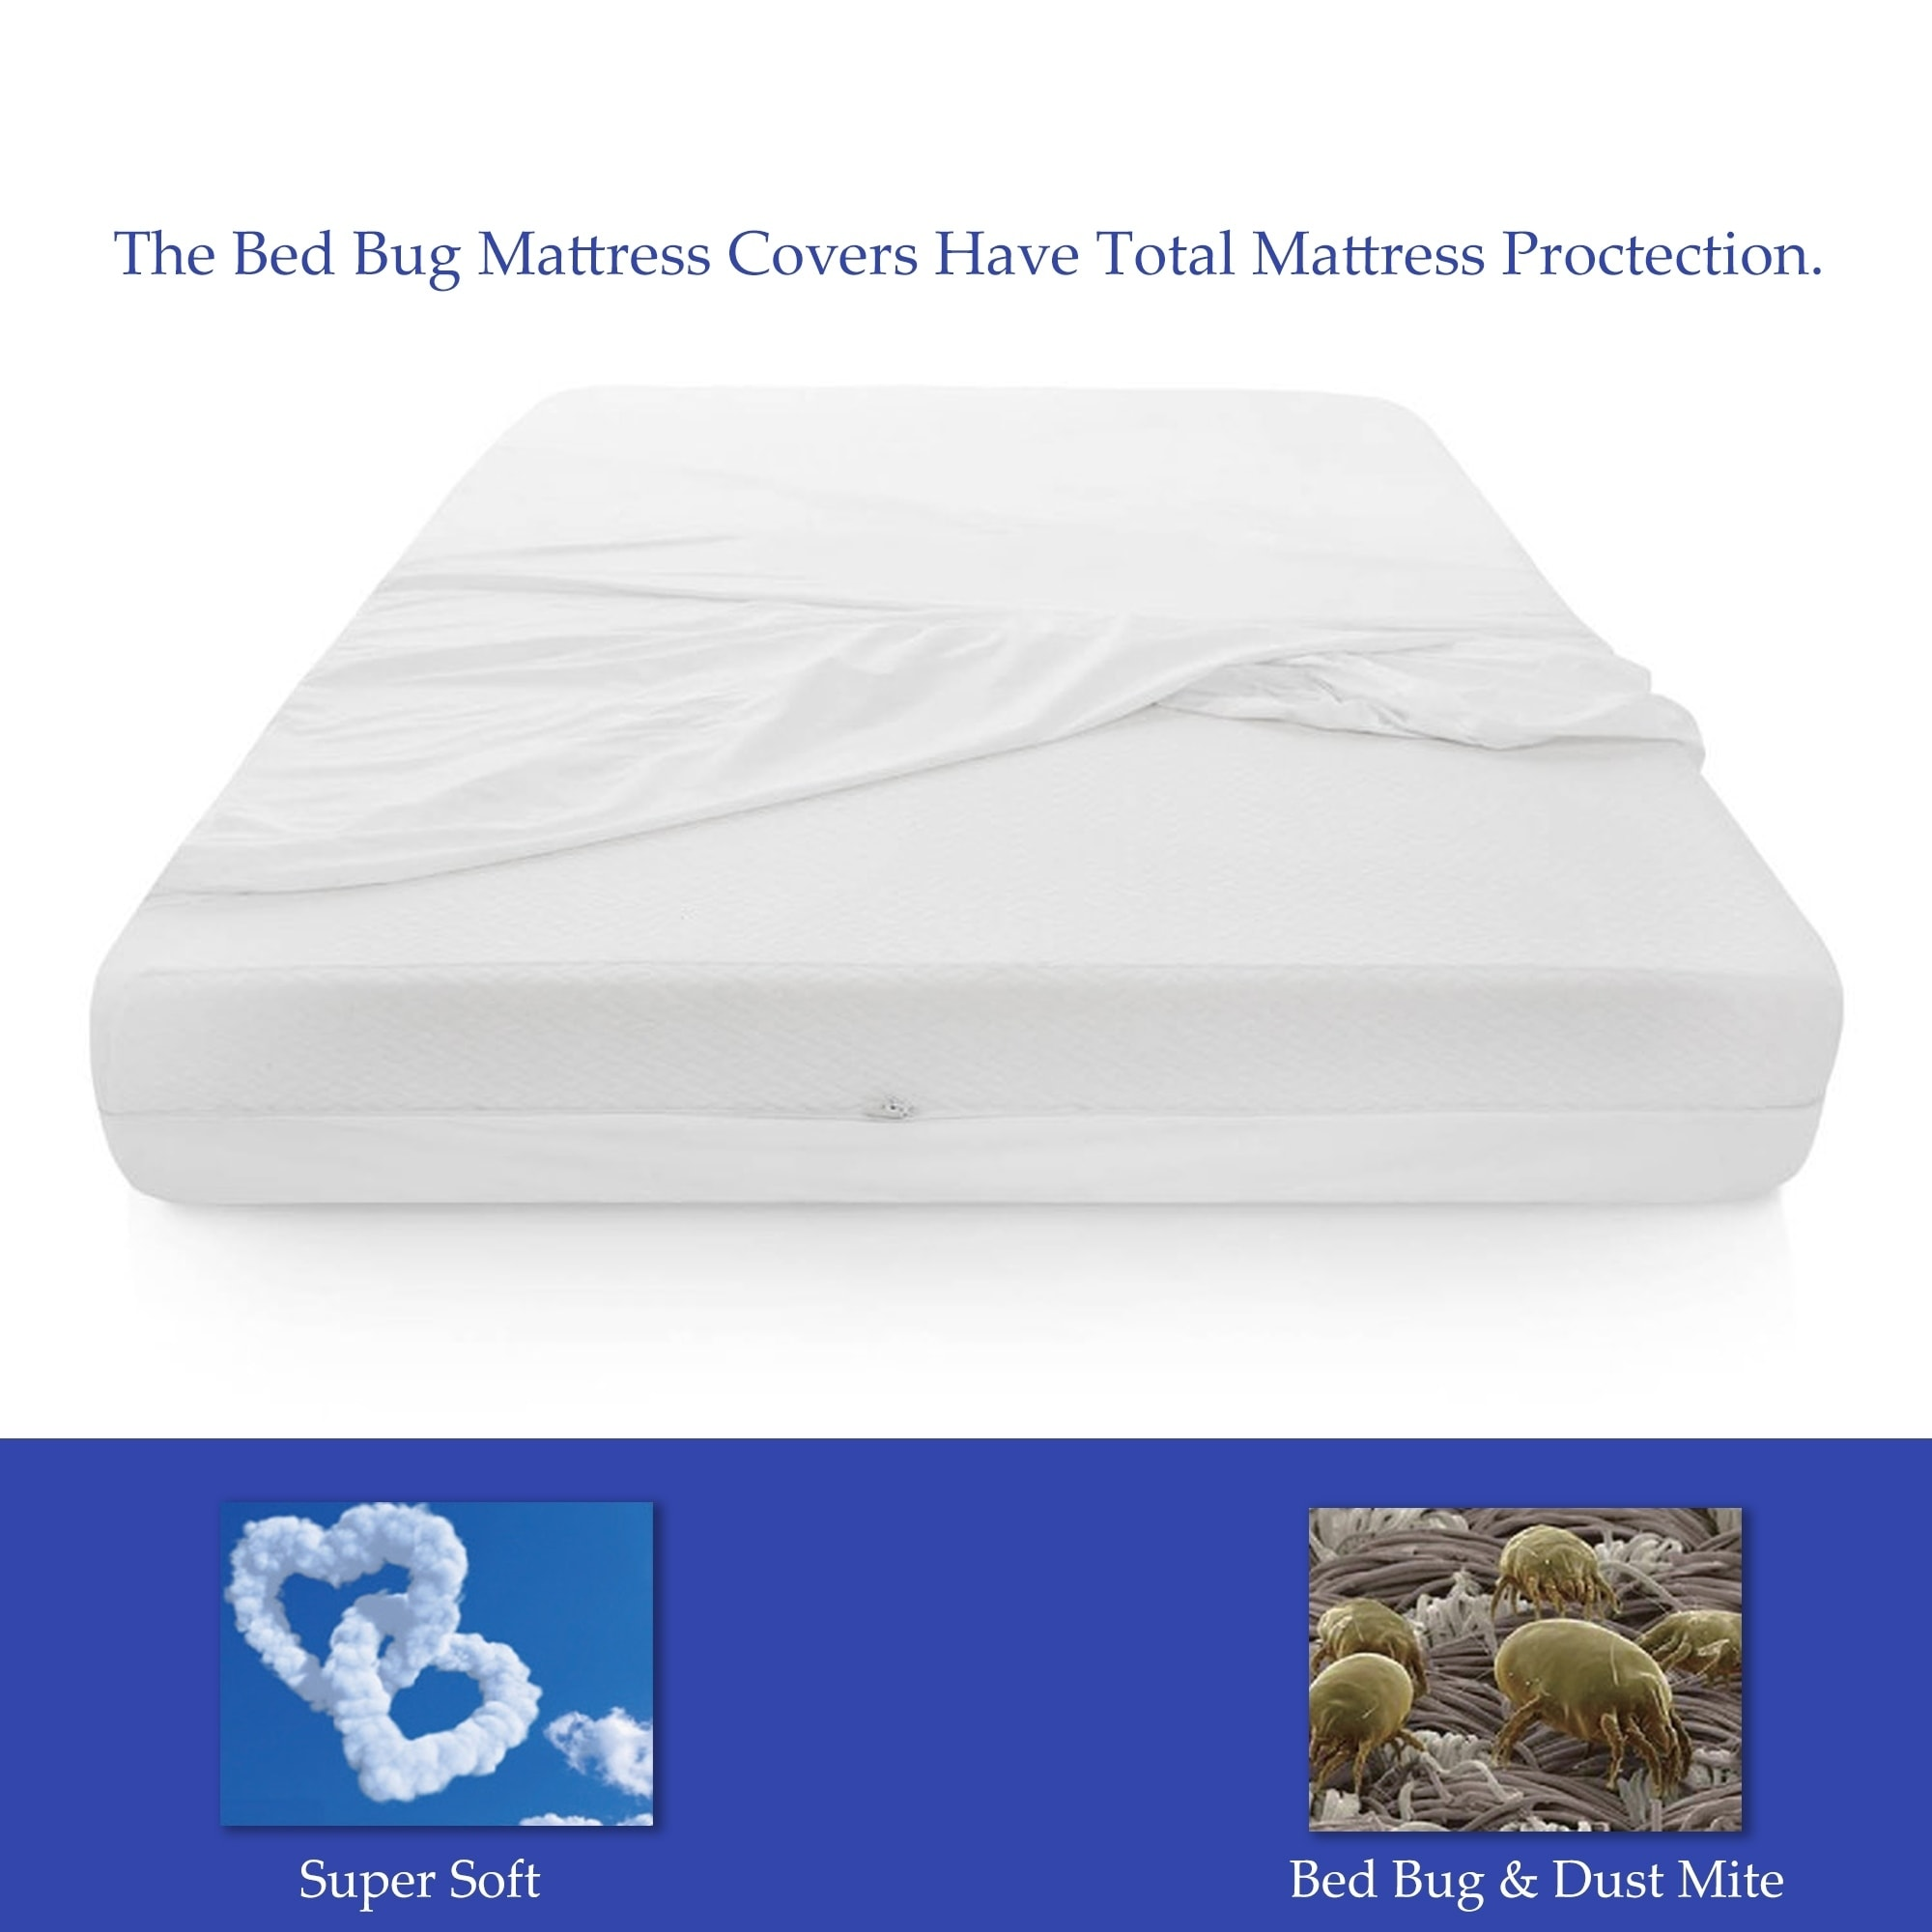 Springs Coil Bed Bug Protector for Mattress 11-13 inches ...